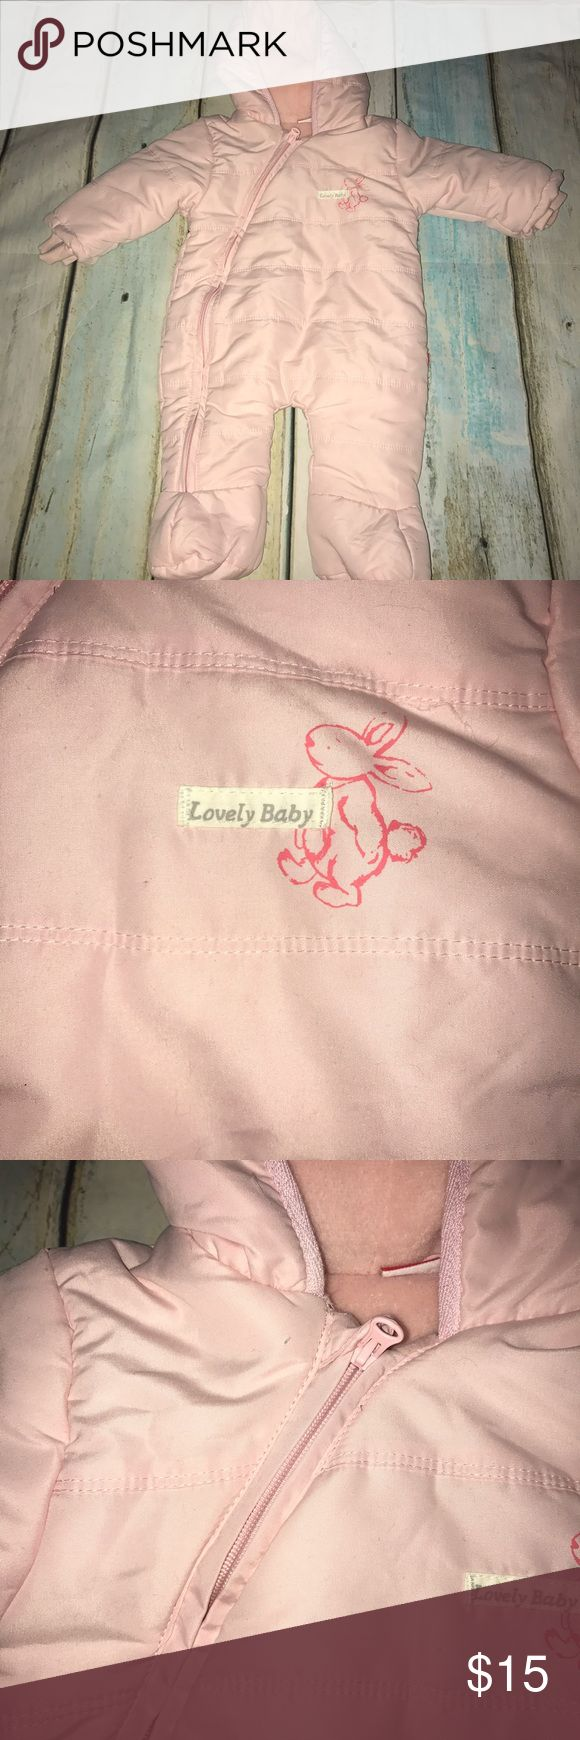 Lovely Baby Pink 3-6 months snow suit jacket Gently used. Worn twice. Jackets & Coats